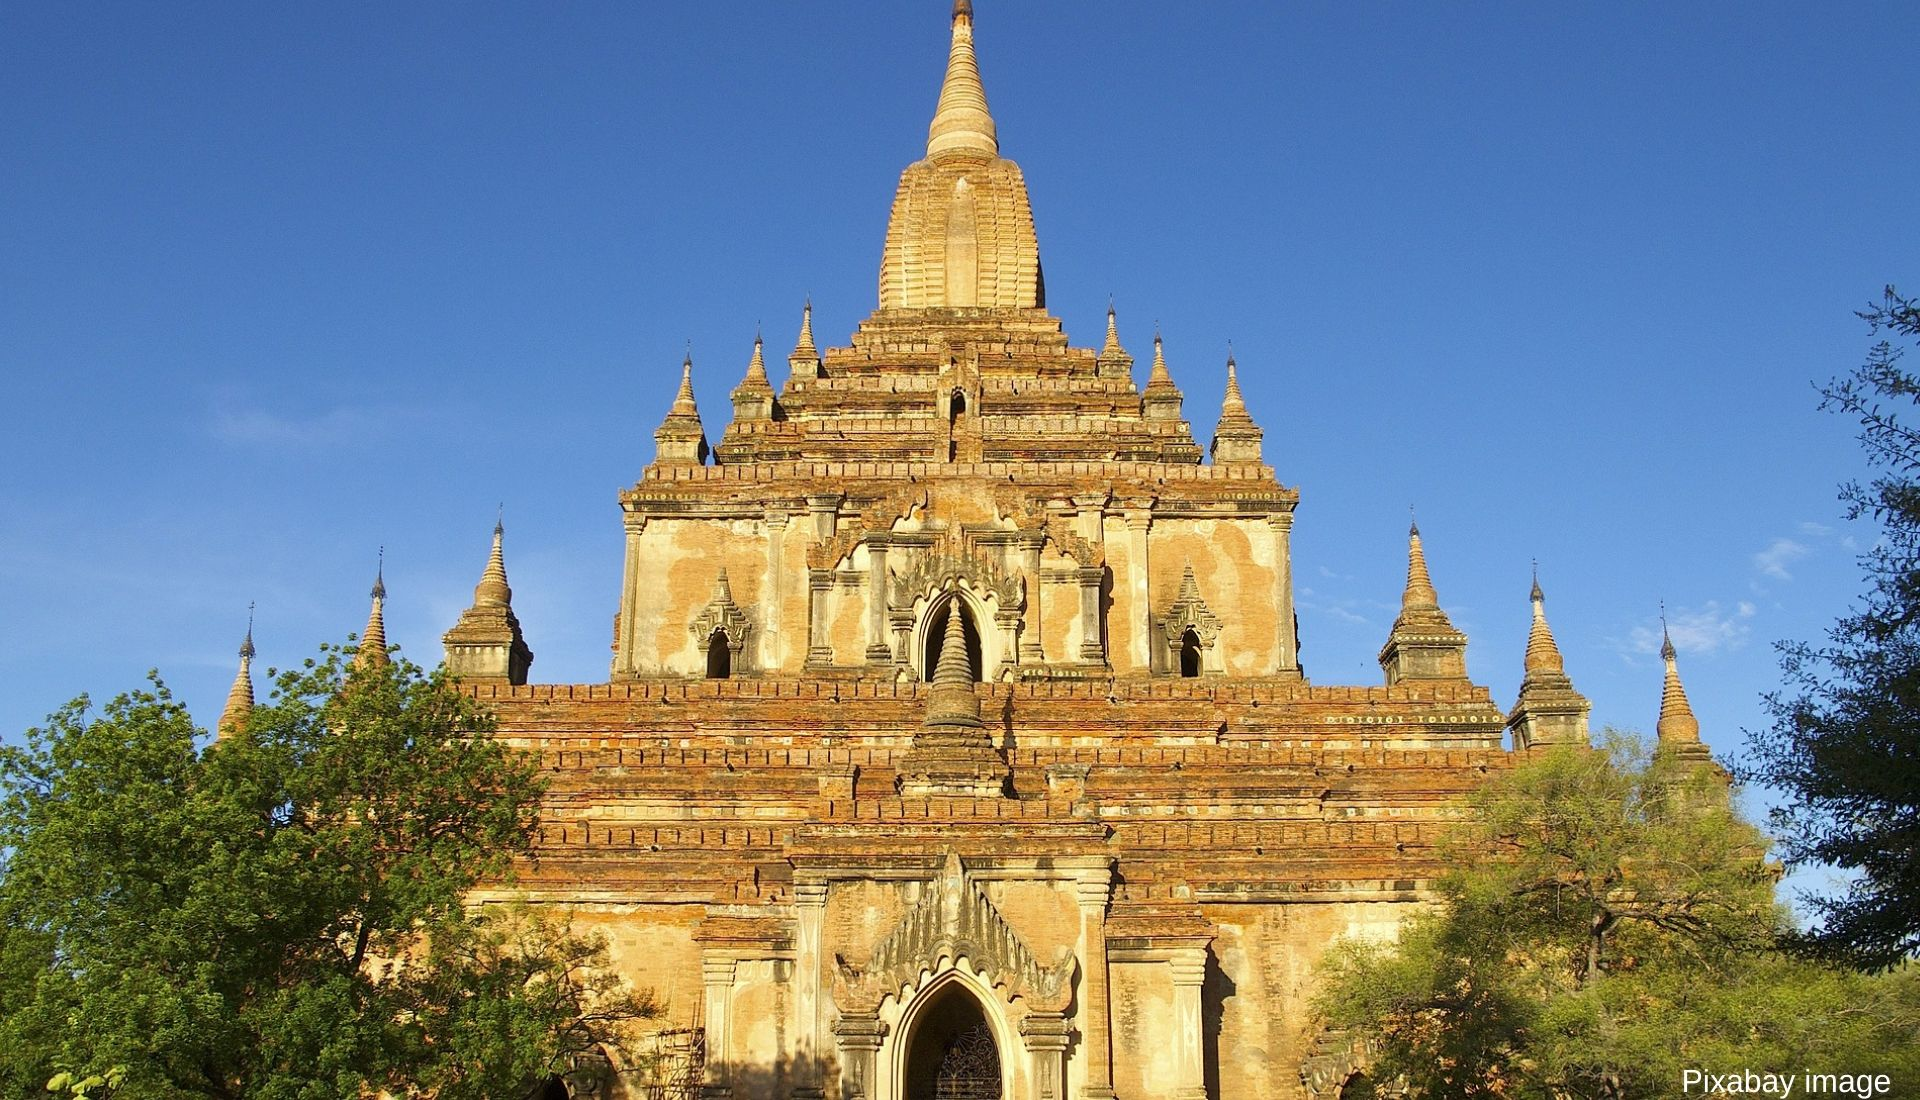 Sulamani Pagoda for sunset